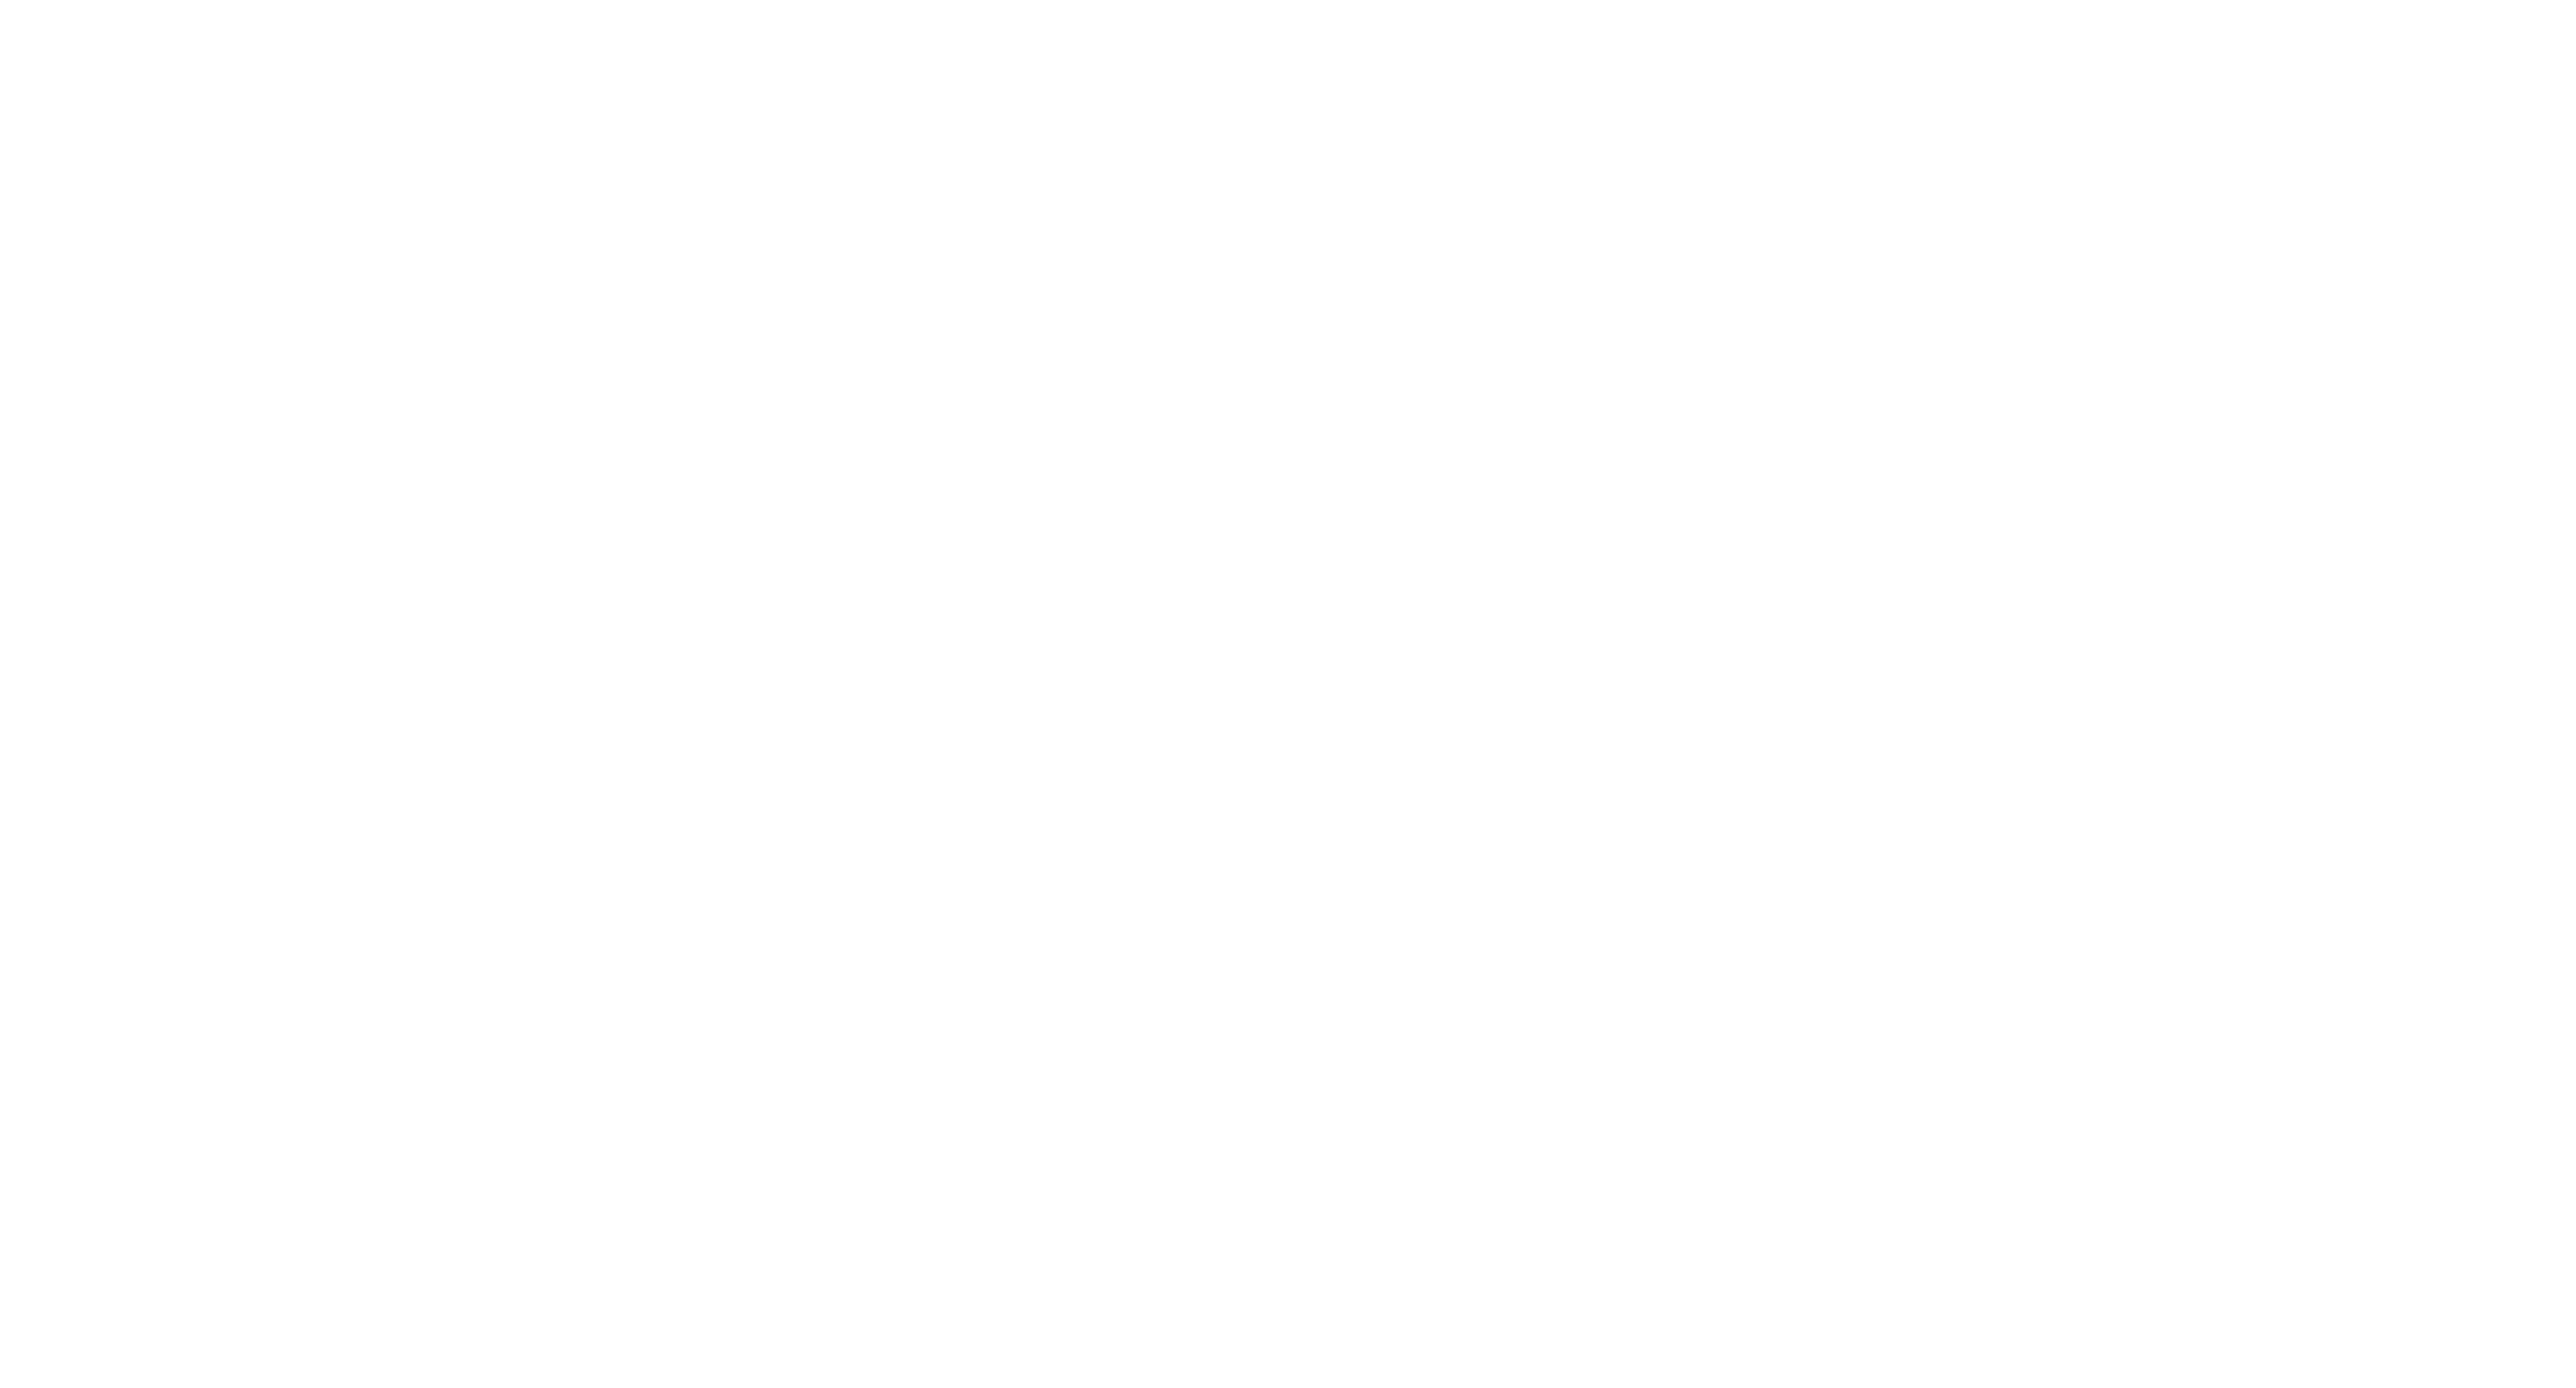 Tiffany Hair Salon